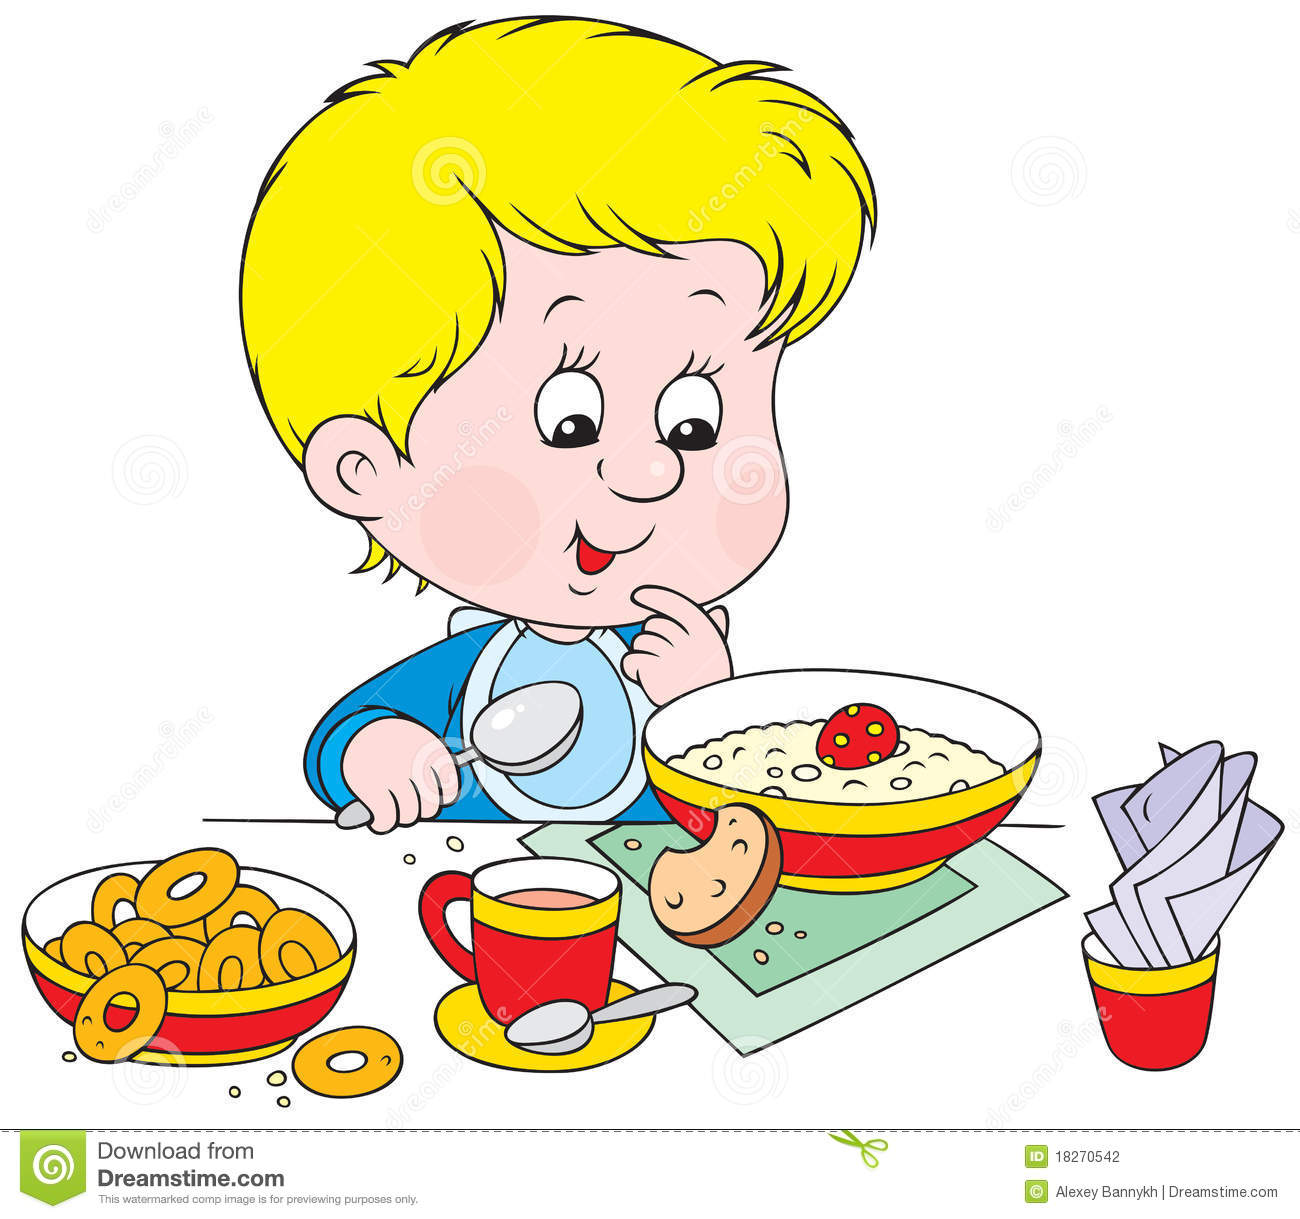 Breakfast clipart little boy Panda Breakfast Images 20clipart Clipart